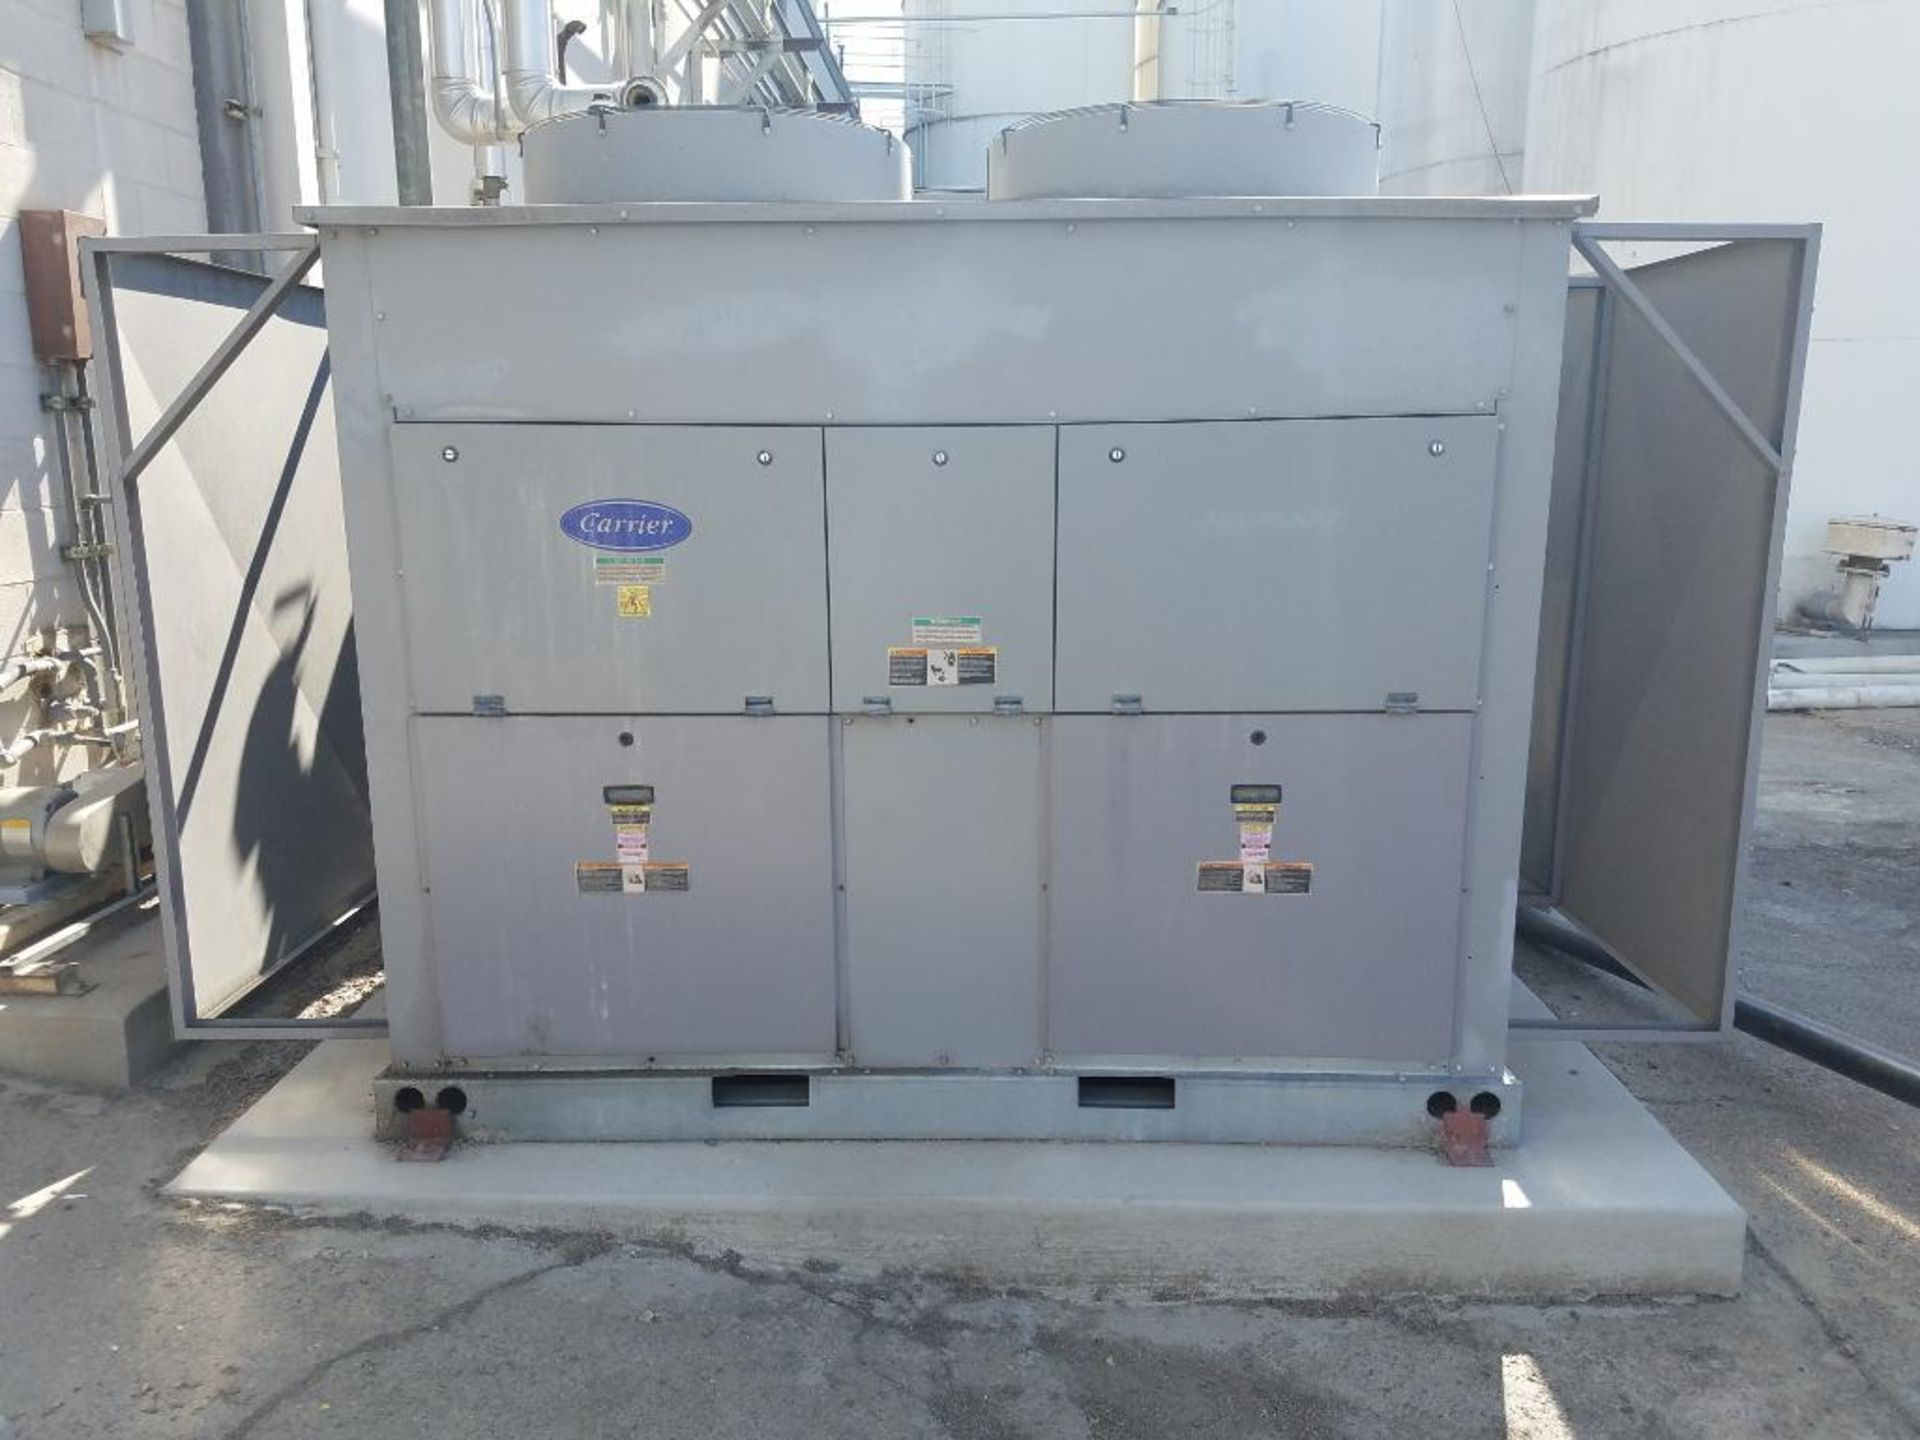 Carrier water chiller - Image 2 of 6